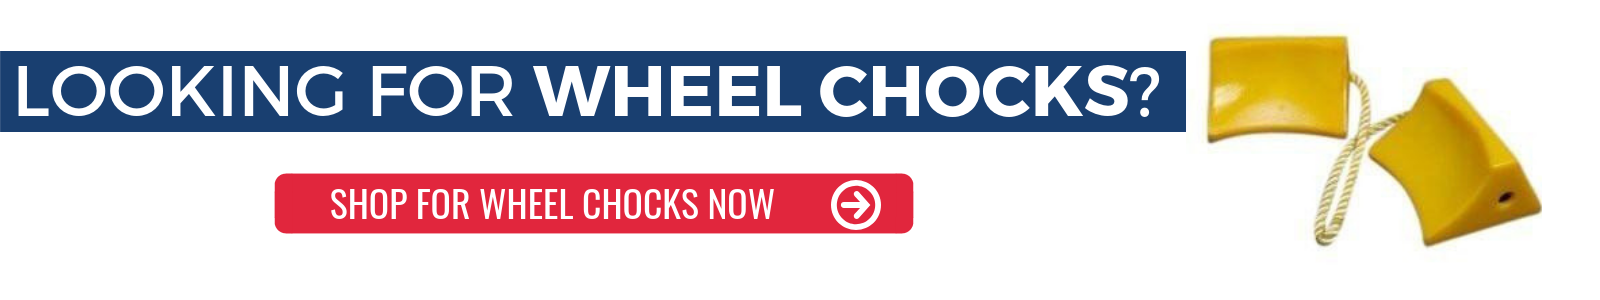 Shop for wheel chocks at Ramp Champ